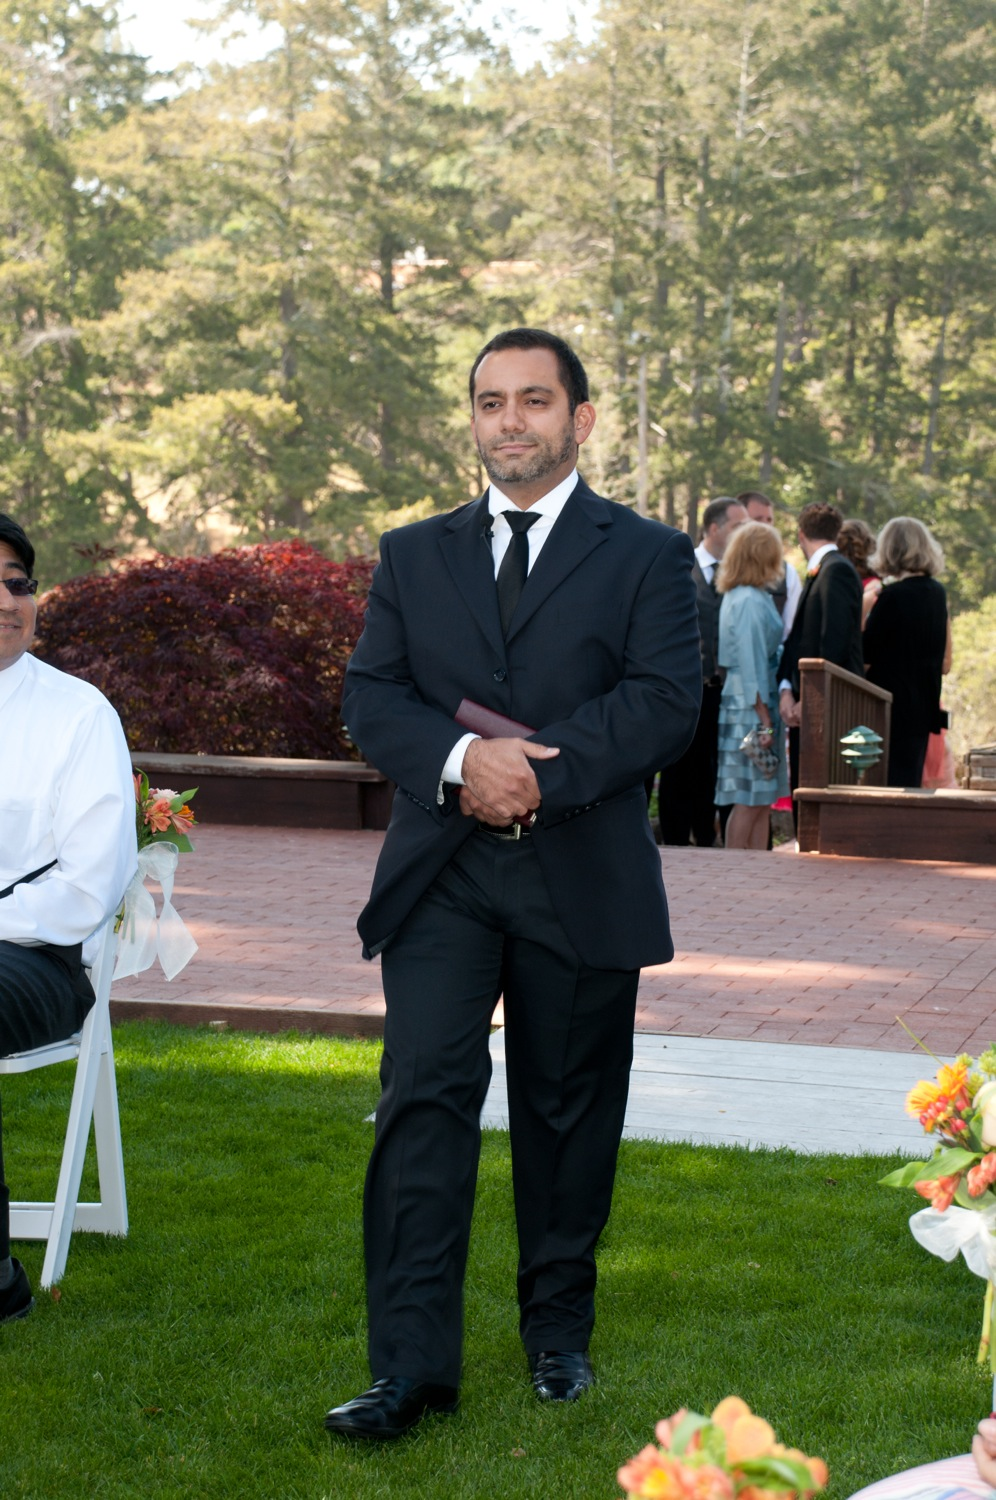 Christian, magician, performer, and our officiant, walks down the aisle.